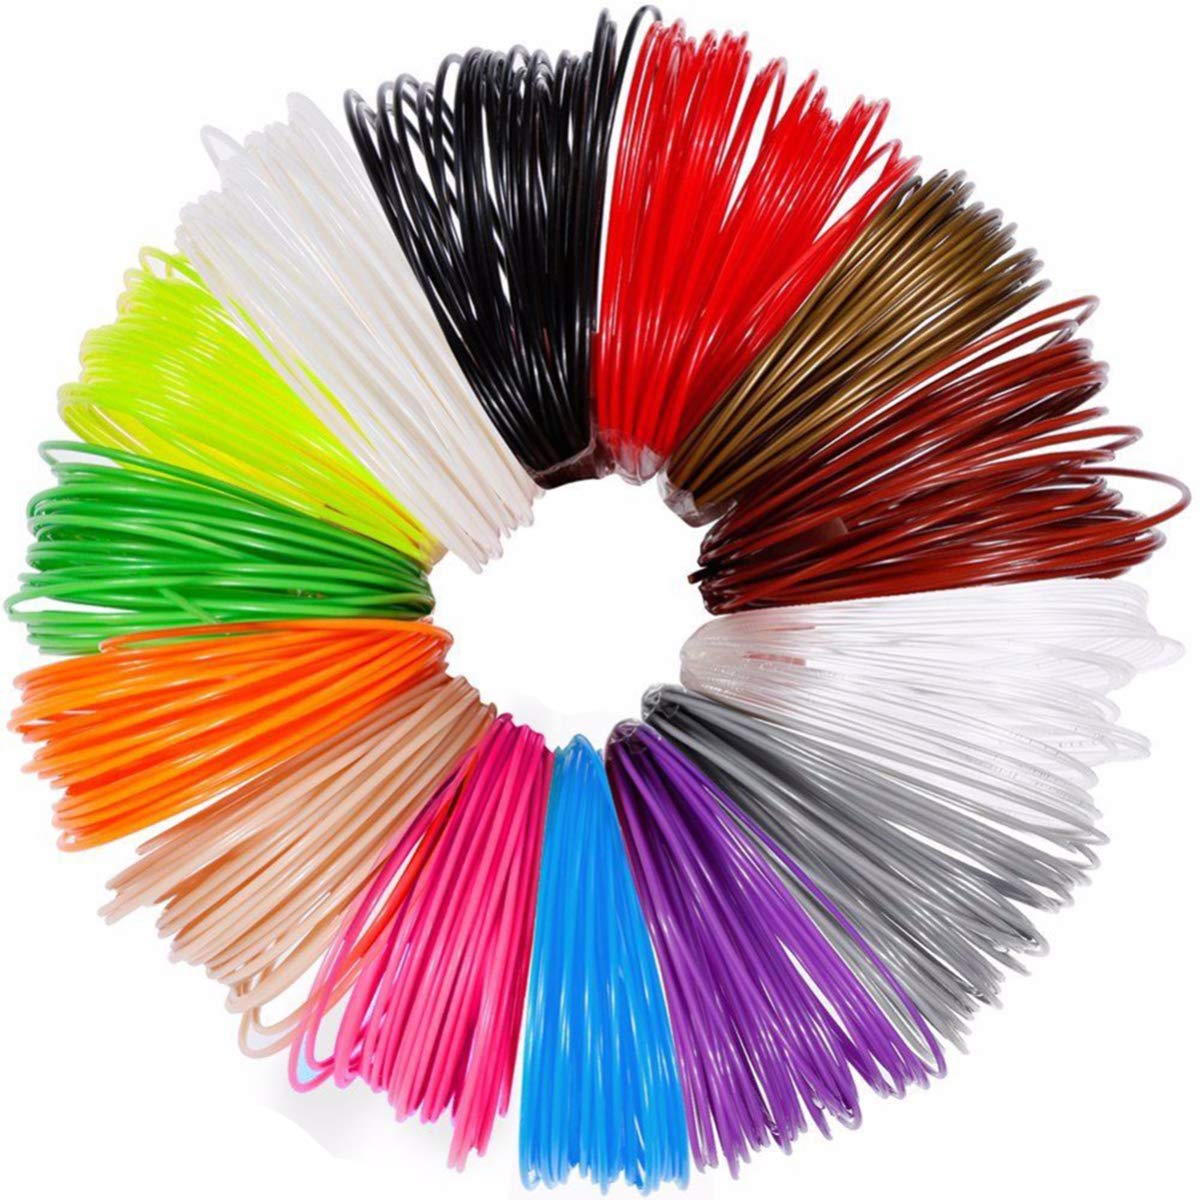 Amazon.com: 12 Colors PLA 3D Printer Filament 1.75mm 3D ...